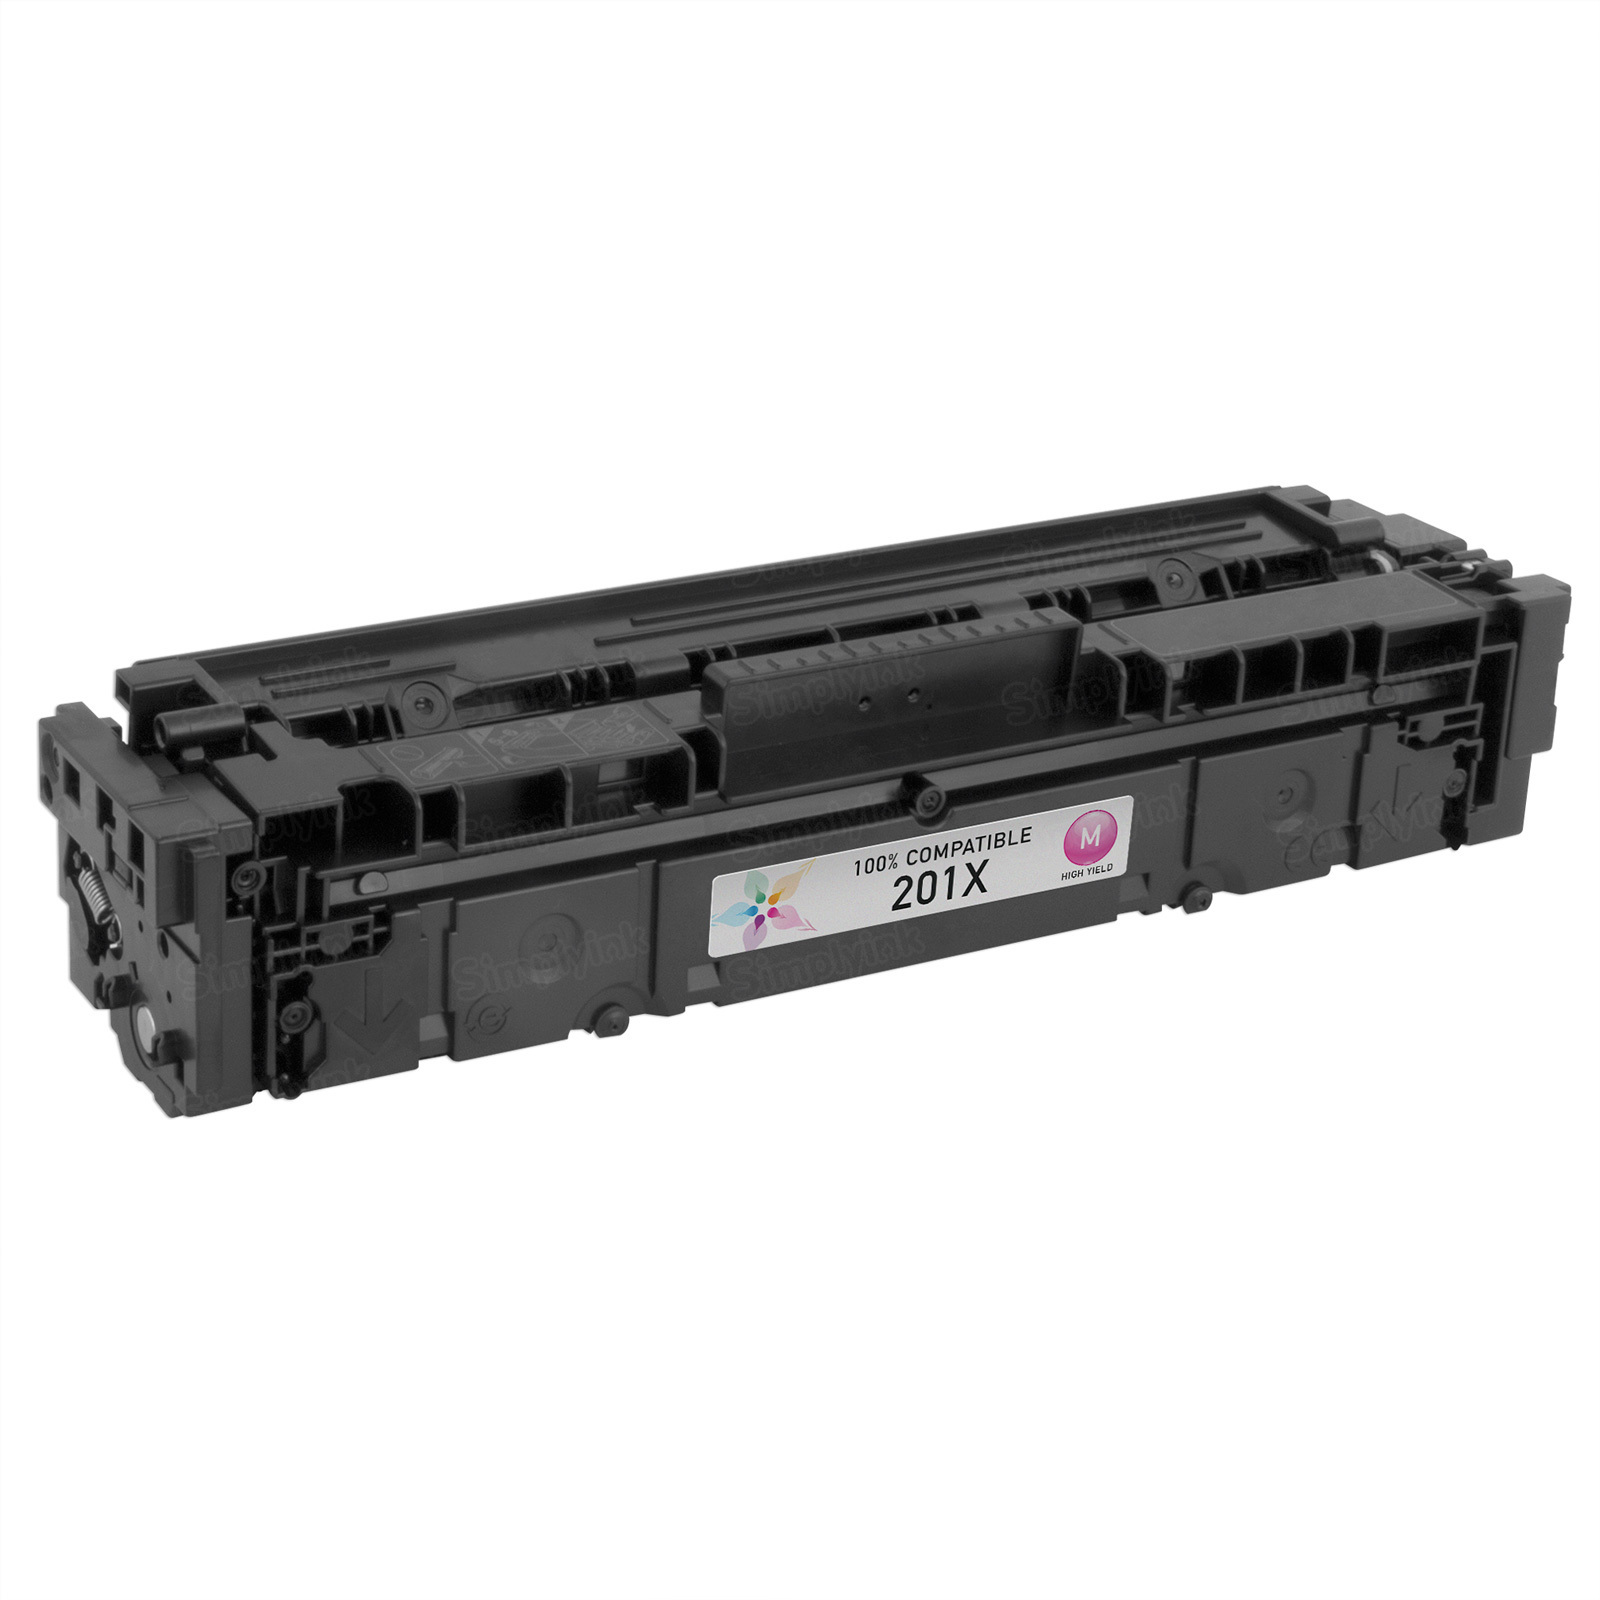 Compatible Brand HY Magenta Laser Toner for HP 201X